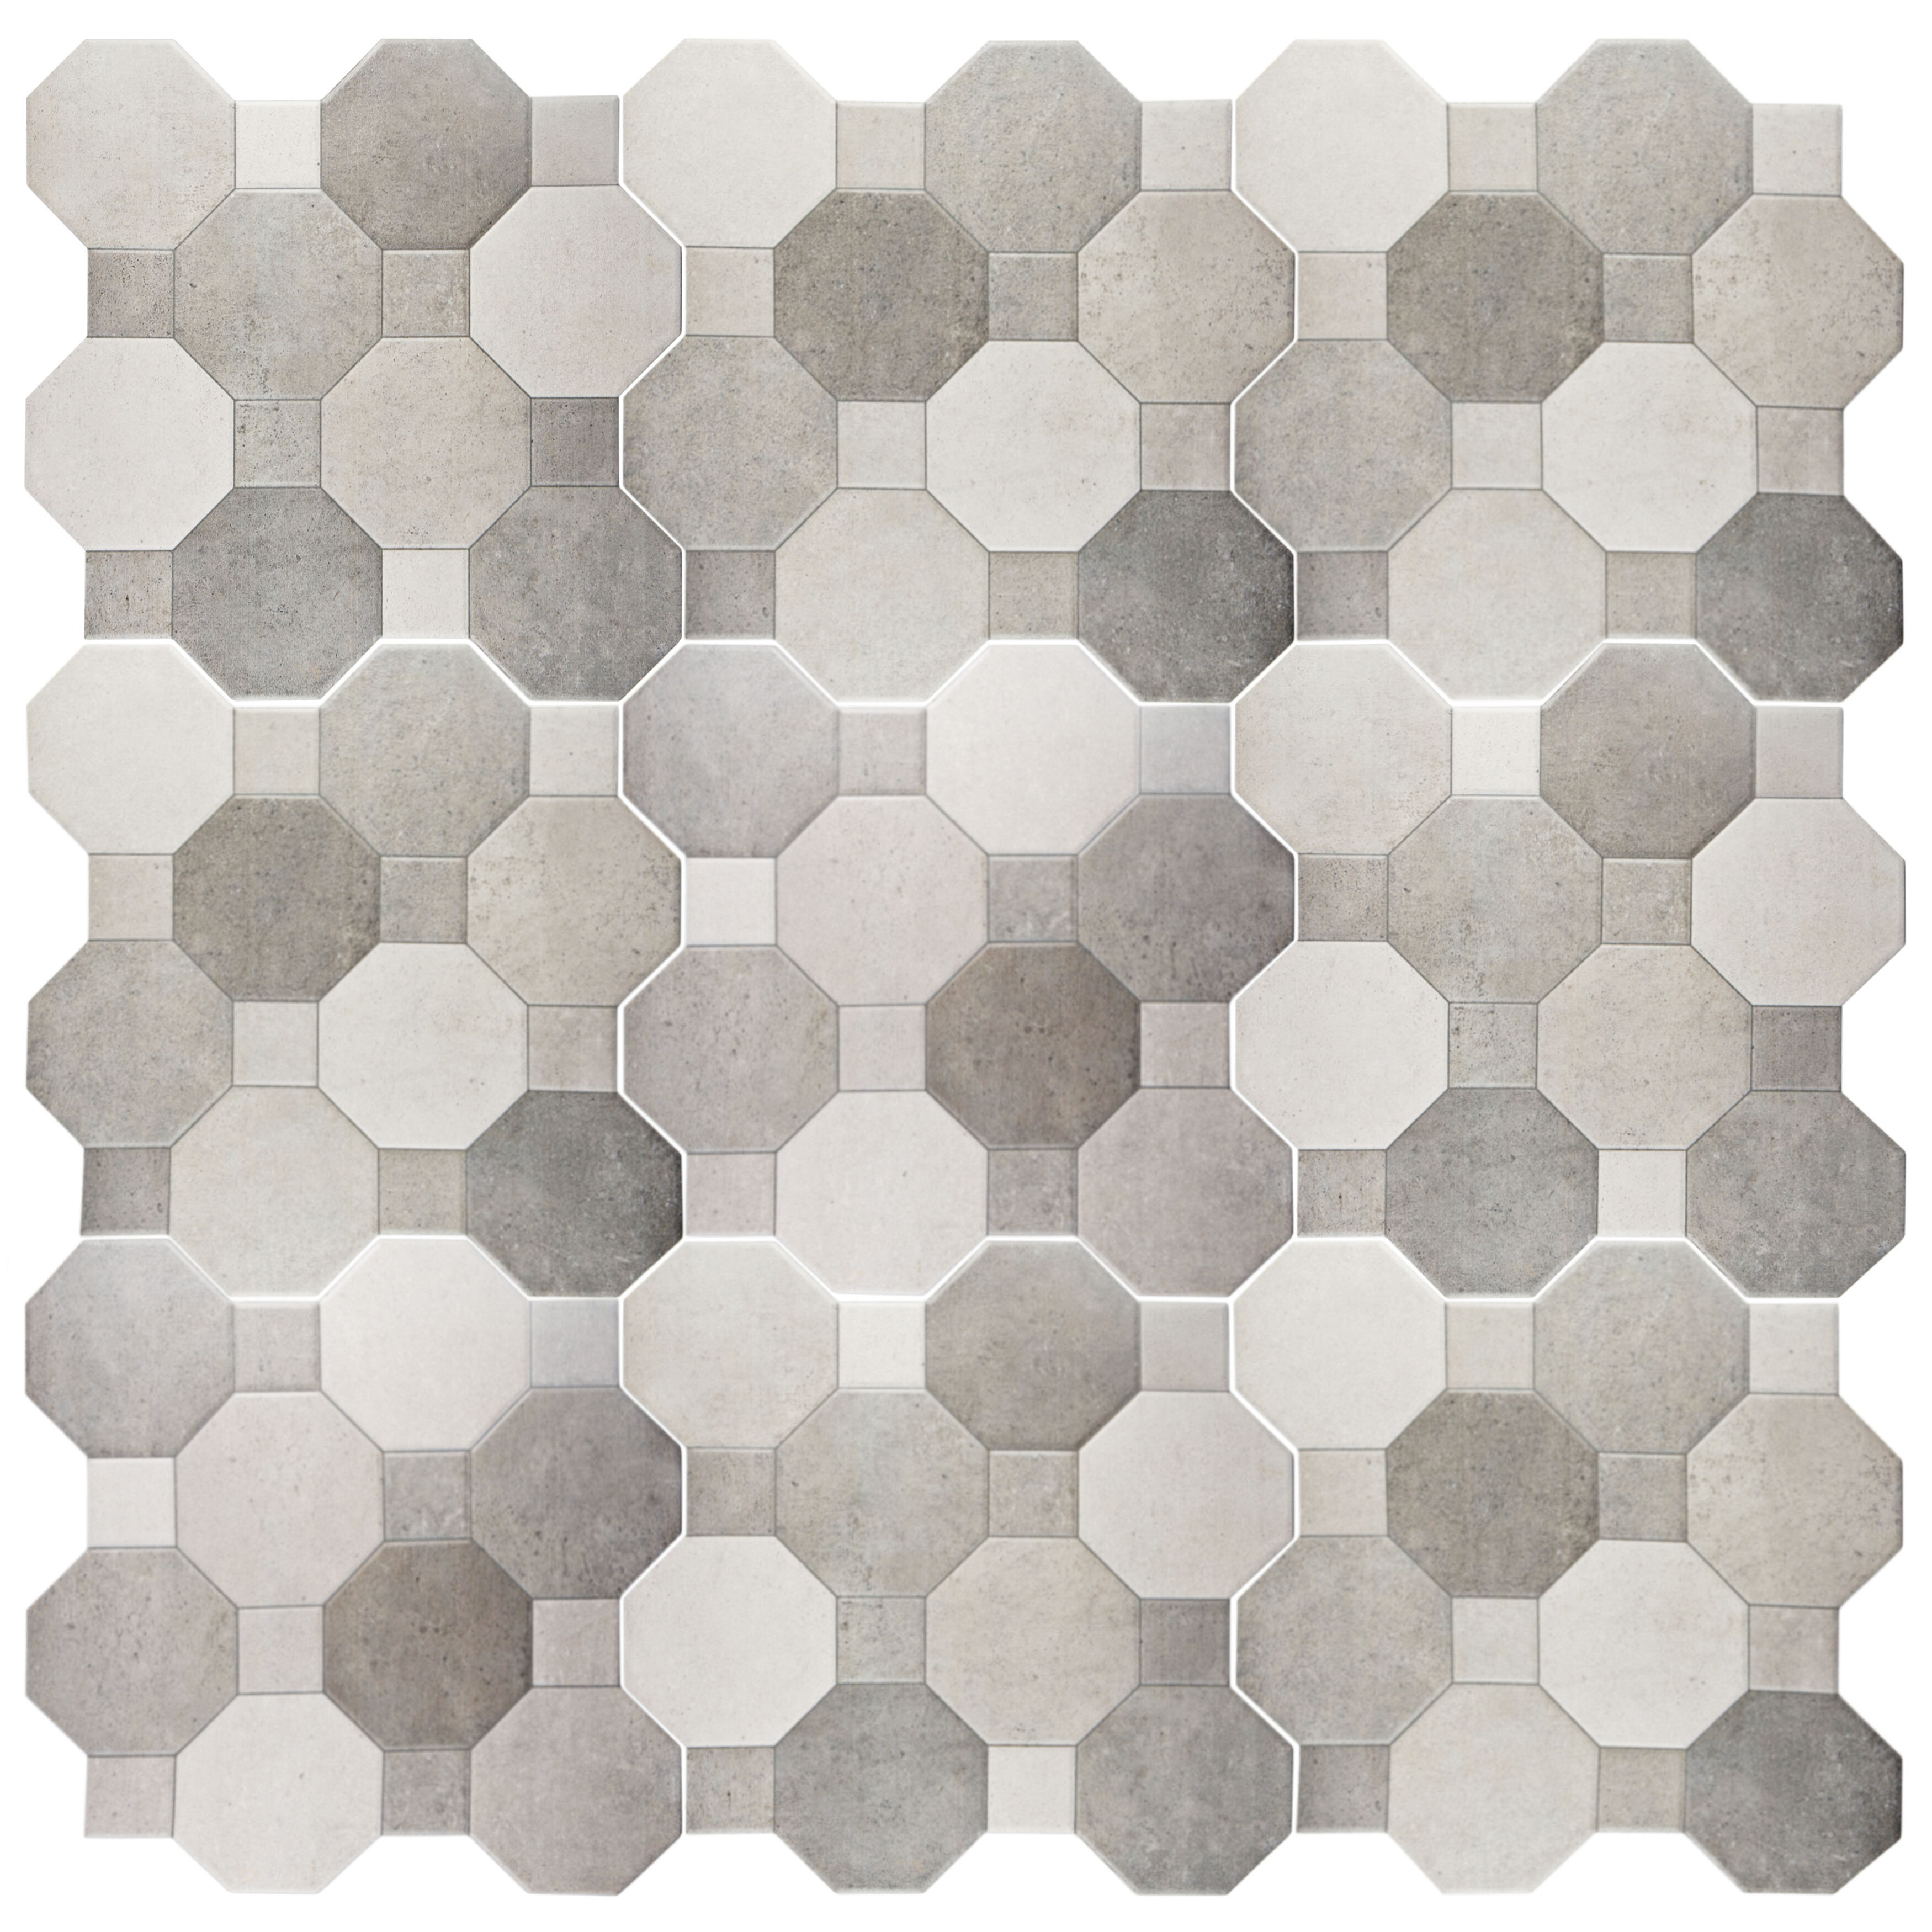 Elitetile imagino 1775 x 1775 ceramic tile in cement reviews elitetile imagino 1775 x 1775 ceramic tile in cement reviews wayfair dailygadgetfo Choice Image